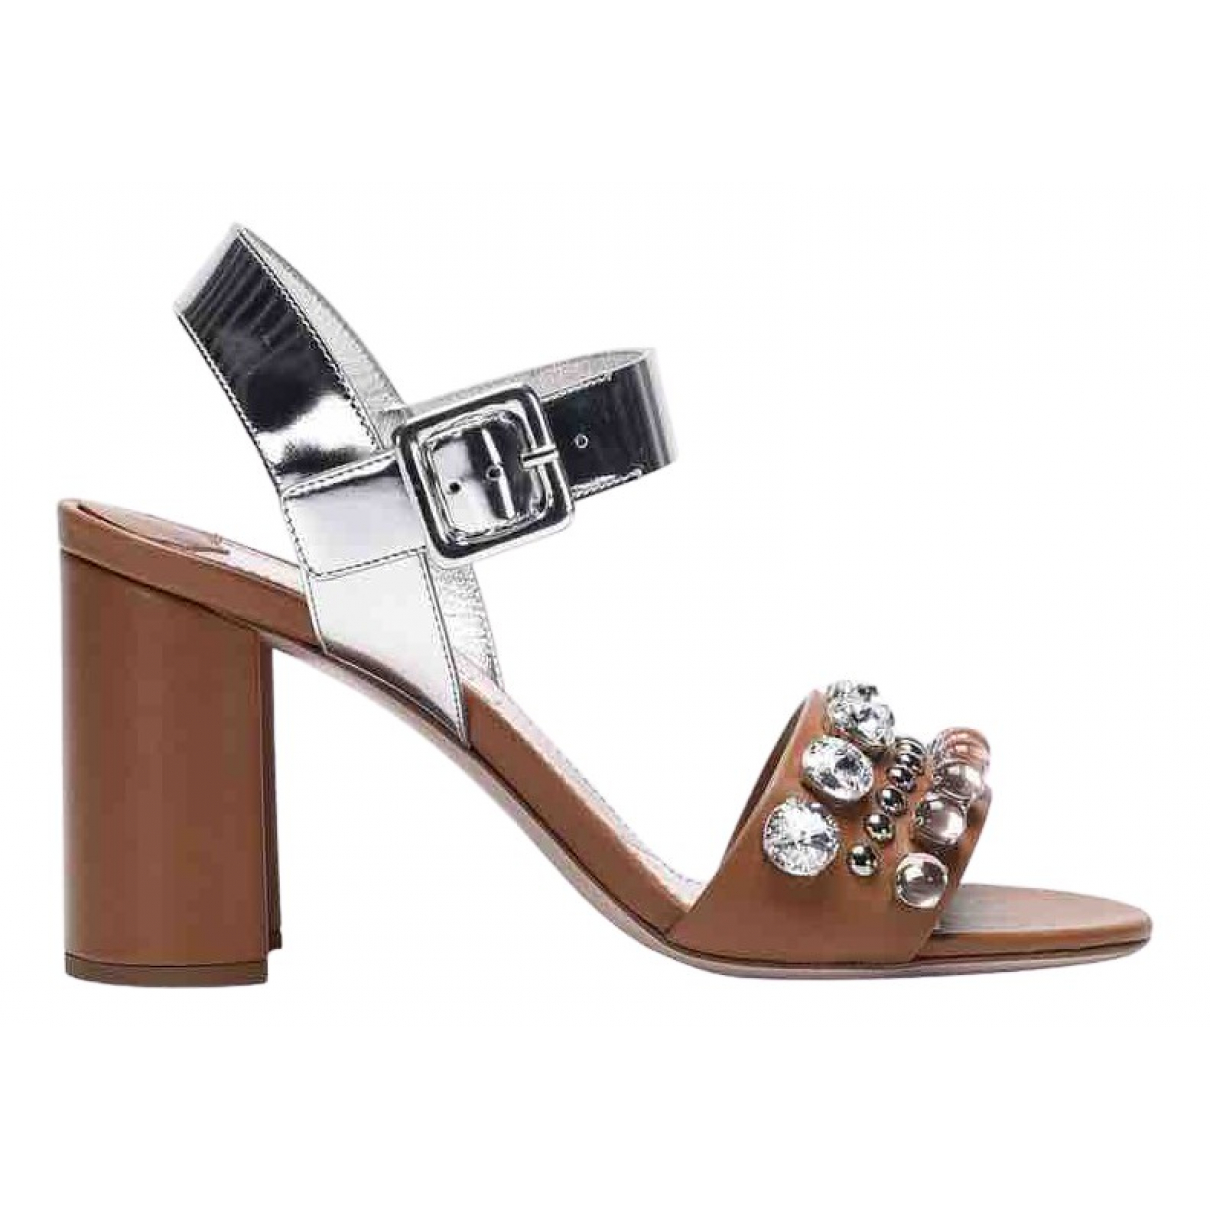 Miu Miu \N Silver Leather Sandals for Women 37.5 EU